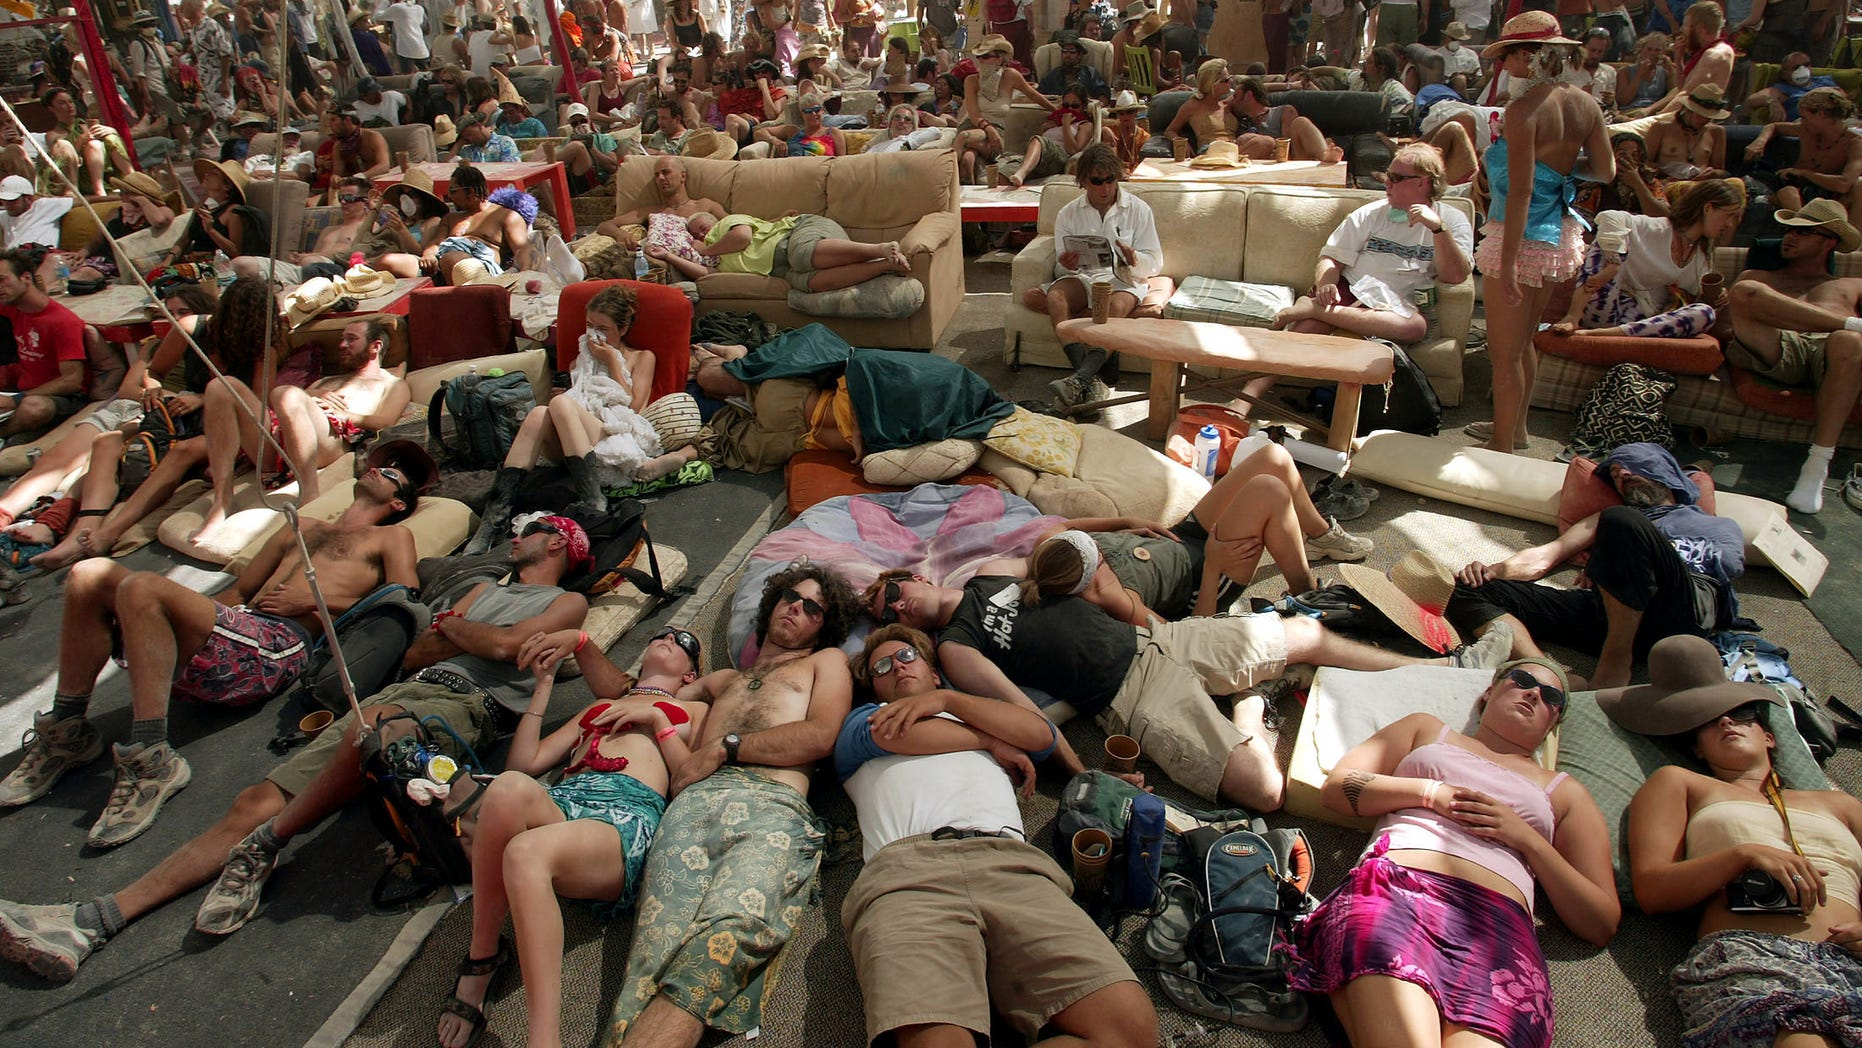 People seek shelter and rest inside the Center Camp Cafe at the Burning Man Festival in Black Rock City, Nevada, August 28, 2003. The Burning Man Festival has been celebrated annually since 1986 and draws around 20,000 people to the Black Rock Desert, celebrating radical self expression. - RTXM6VH